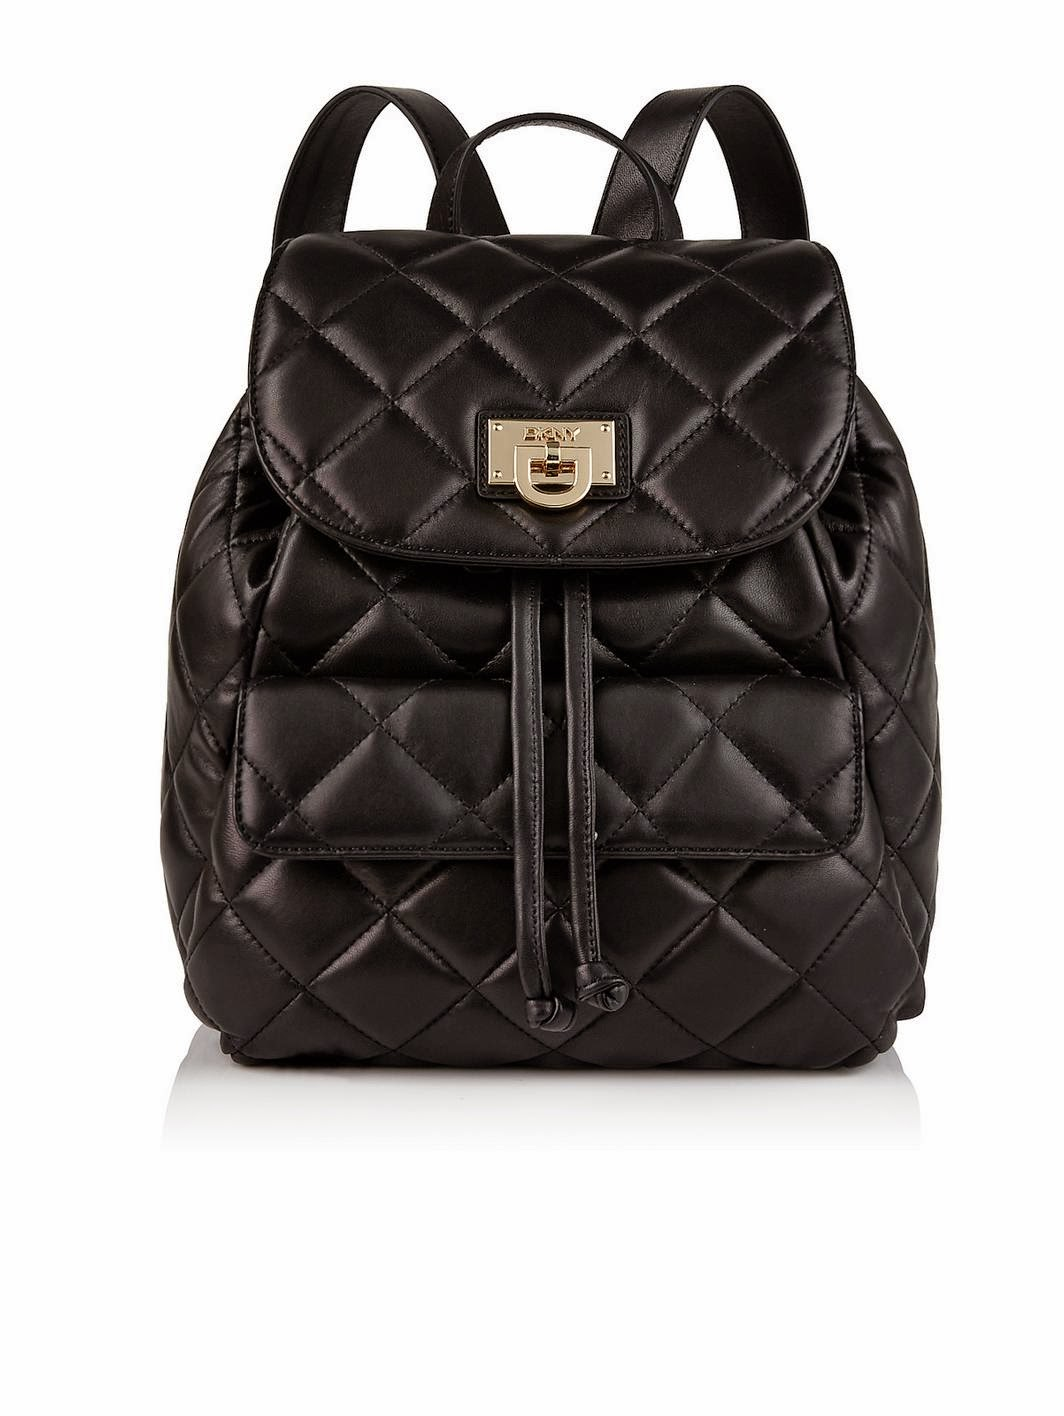 http://www.veryexclusive.co.uk/dkny-gansevoort-quilted-backpack-black/1458627170.prd